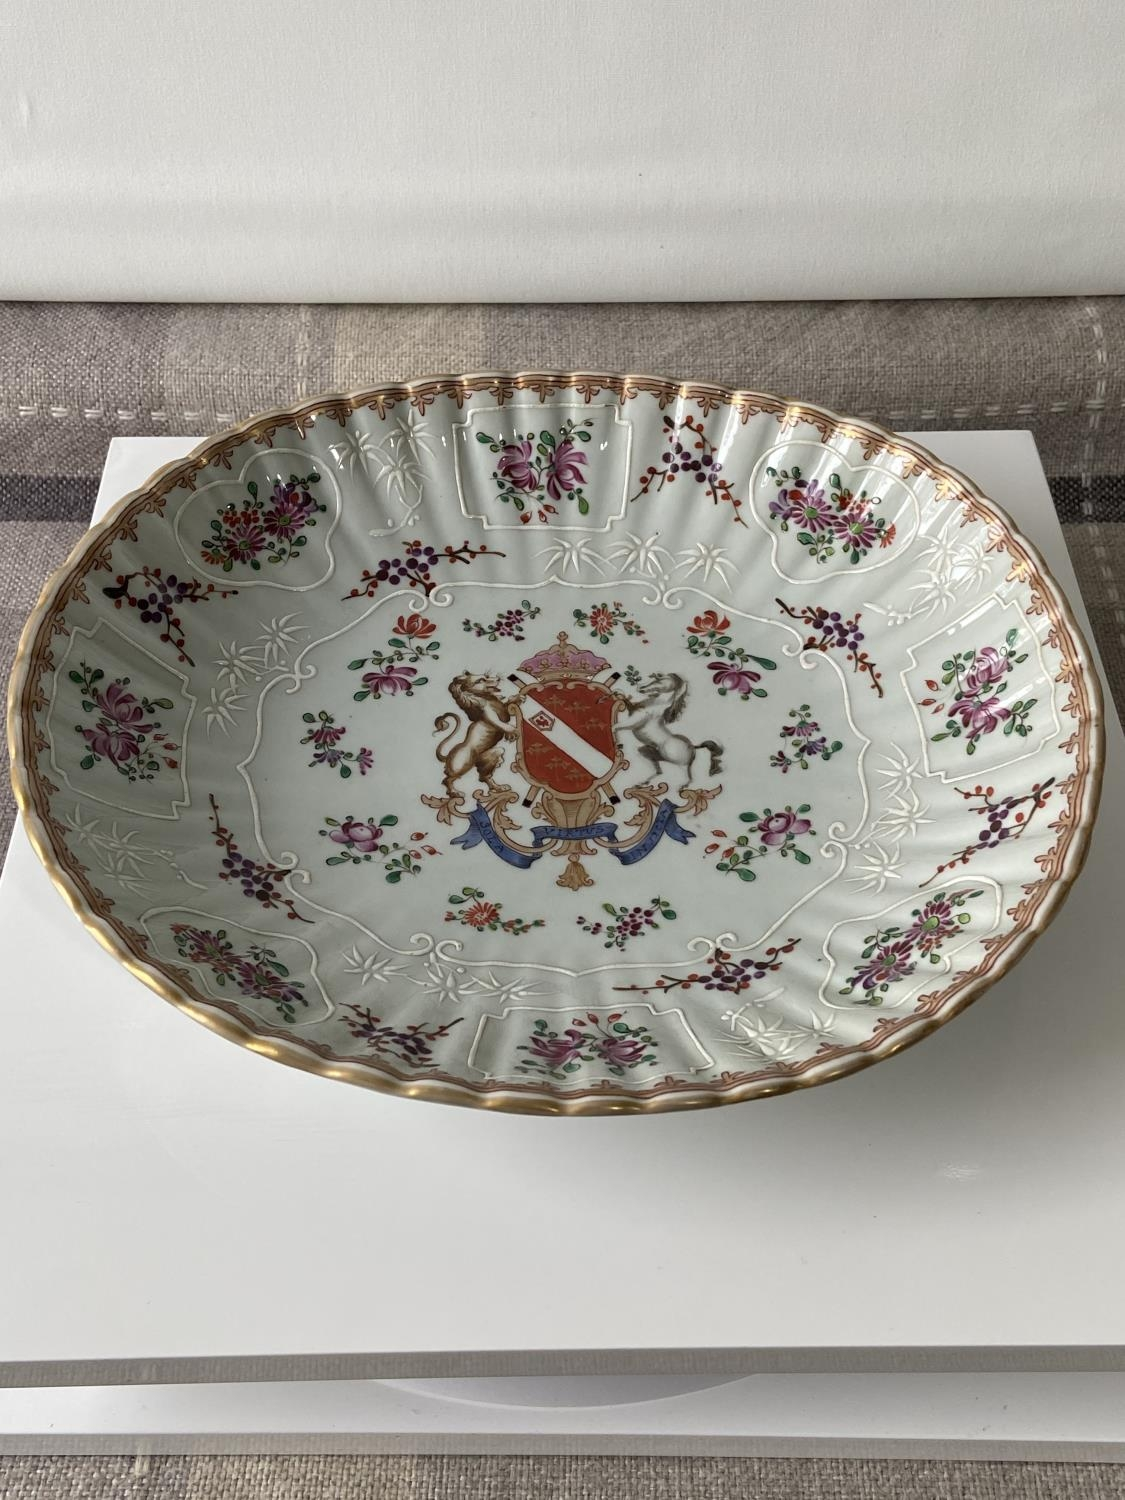 An antique Chinese/ Japanese marked hand painted bowl. Designed with a scalloped edge, flower panels